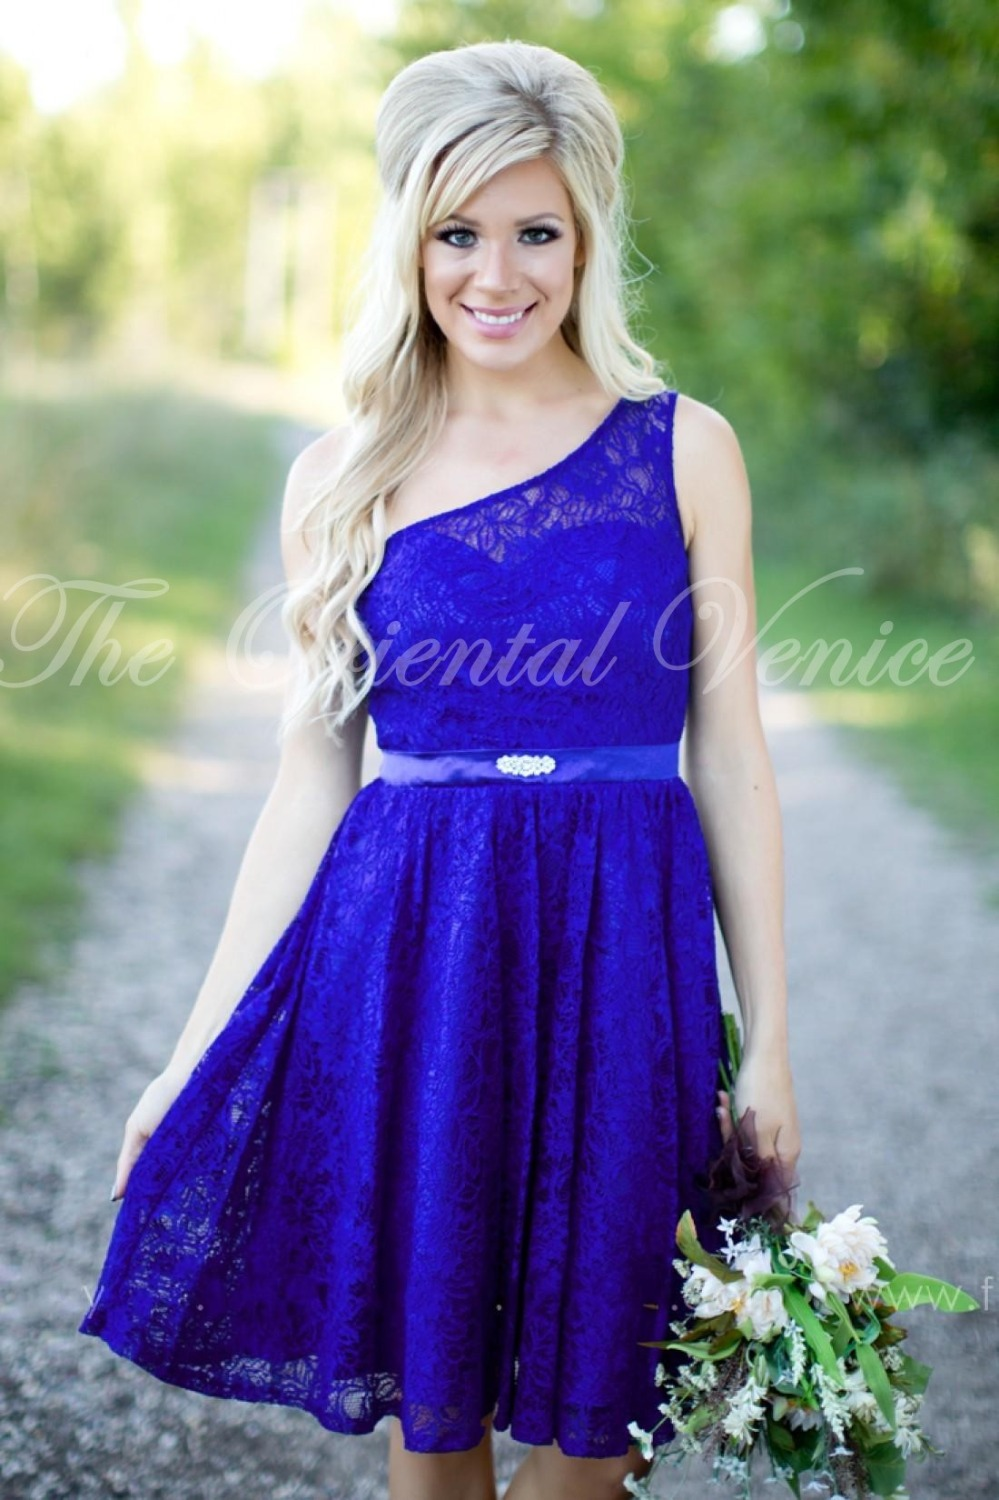 Country style beach bridesmaid dresses royal blue lace short country style beach bridesmaid dresses royal blue lace short wedding party dress knee length one shoulder maid of honor gowns in bridesmaid dresses from ombrellifo Images